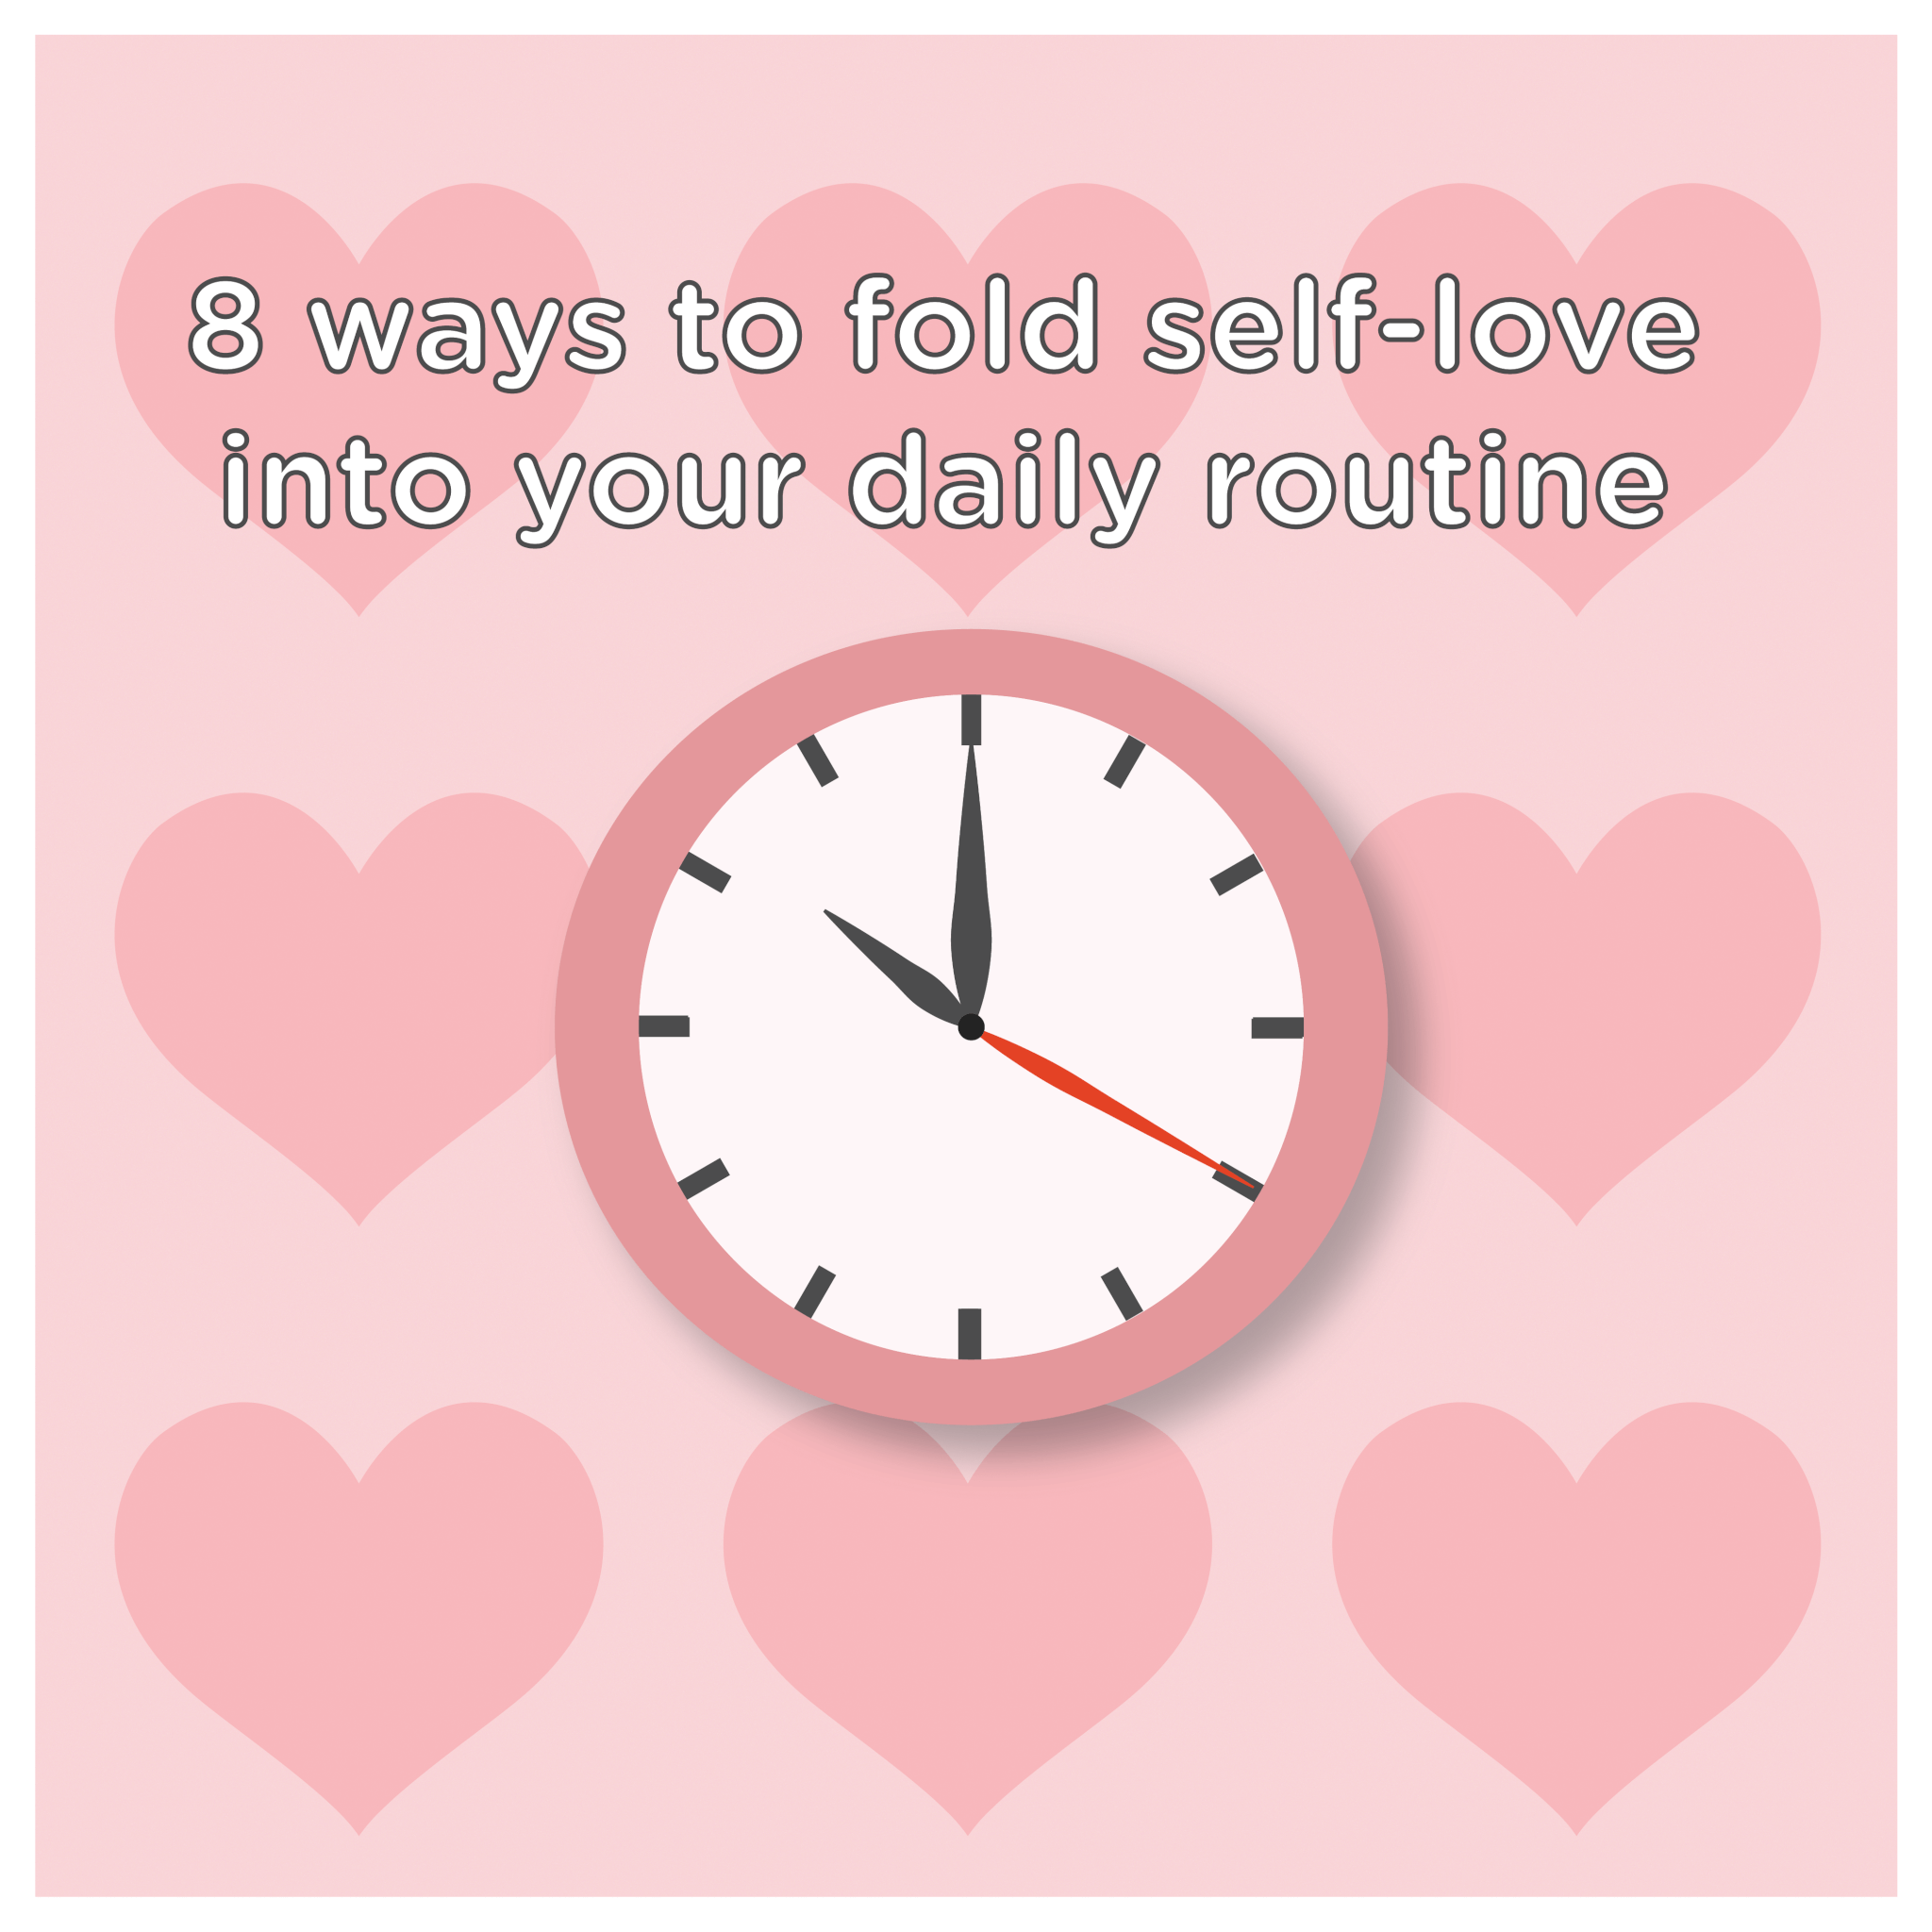 8-ways-to-fold-self-love-into-your-daily-routine-1